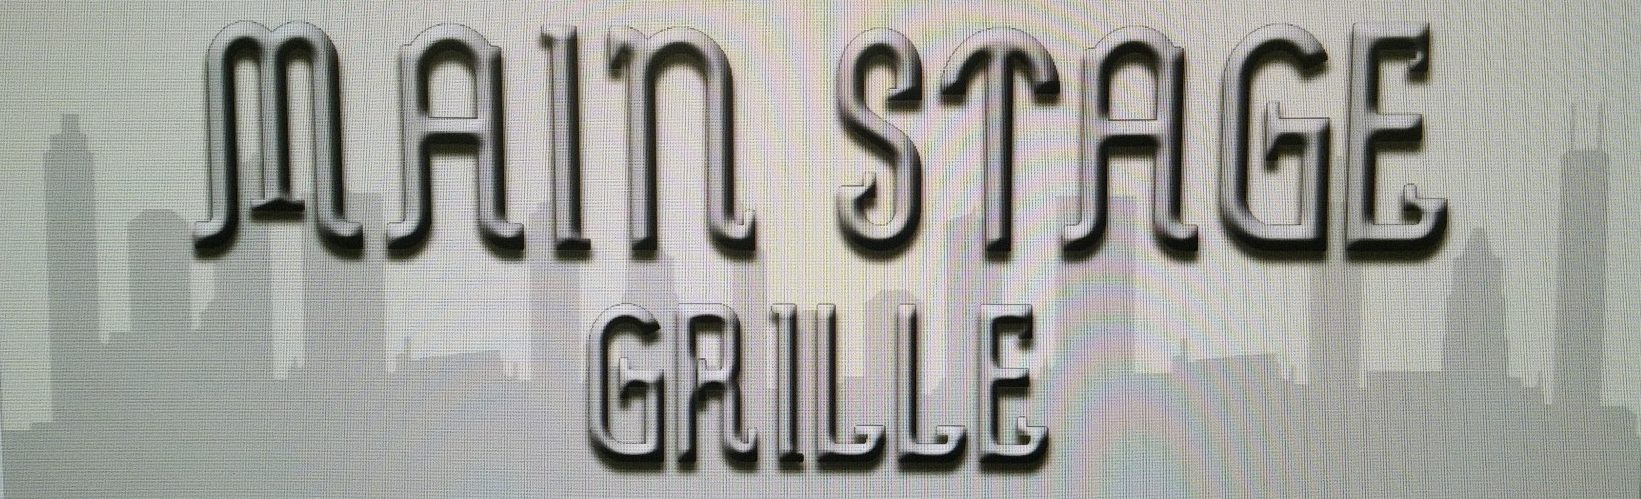 mainstage grille logo